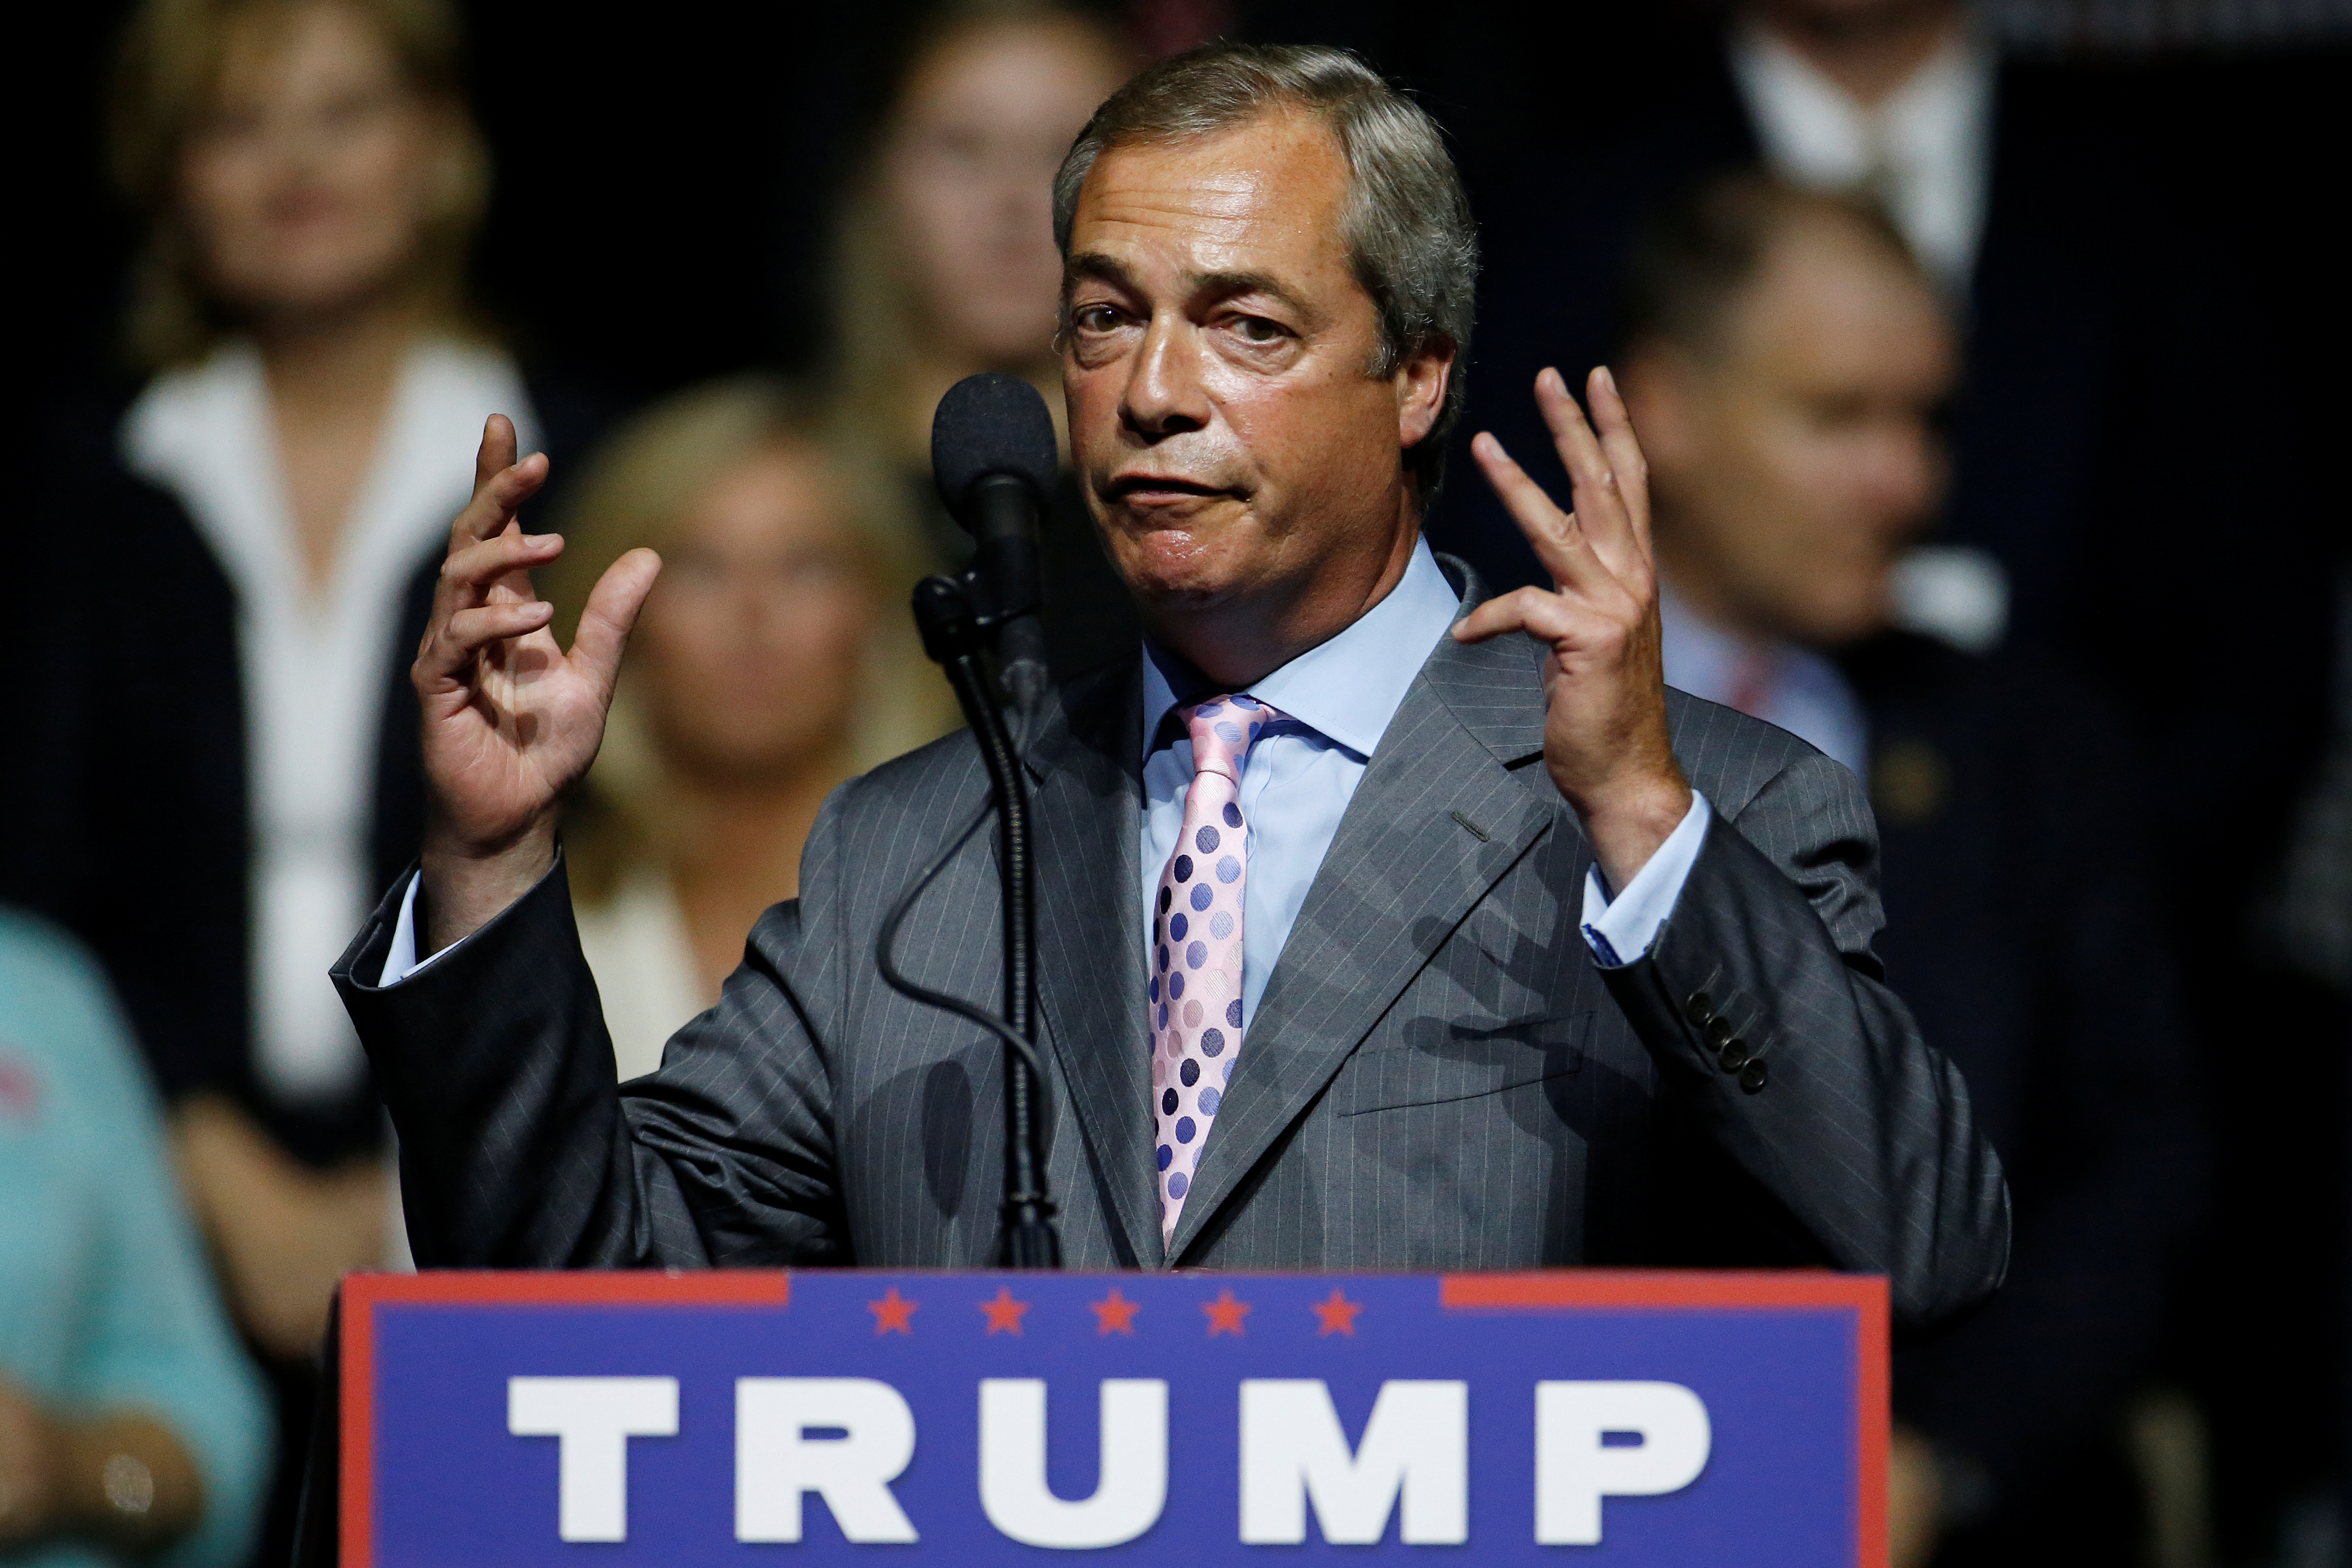 Outgoing UKIP leader Nigel Farage speaks during a campaign rally of Republican presidential nominee Donald Trump in Jackson, Miss., on Aug. 24, 2016